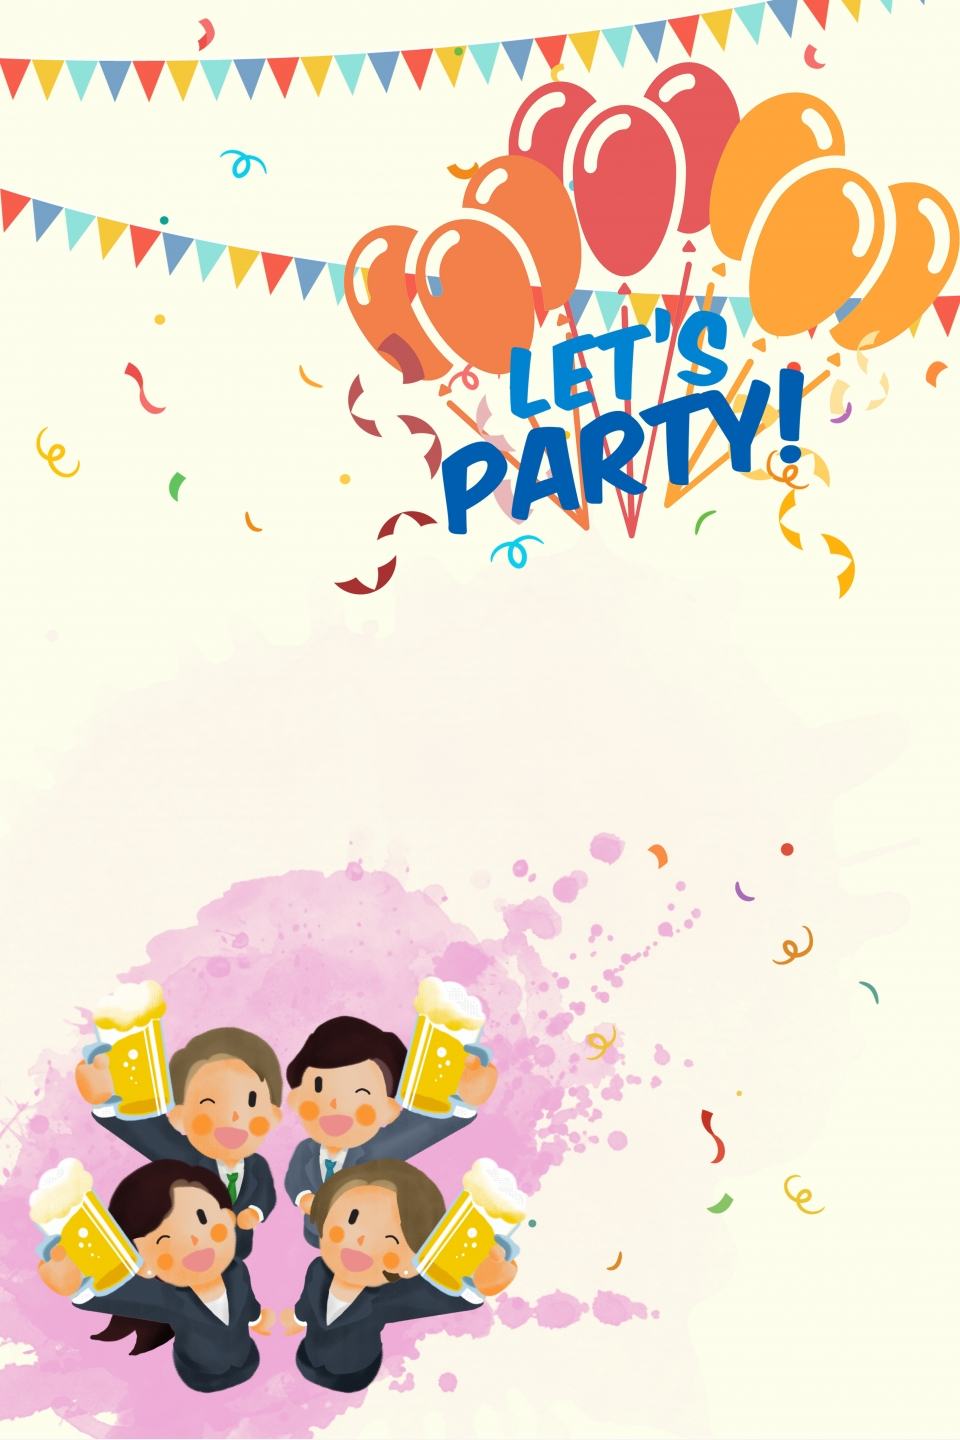 Cute Party Invitation Invitation Party Simple Material